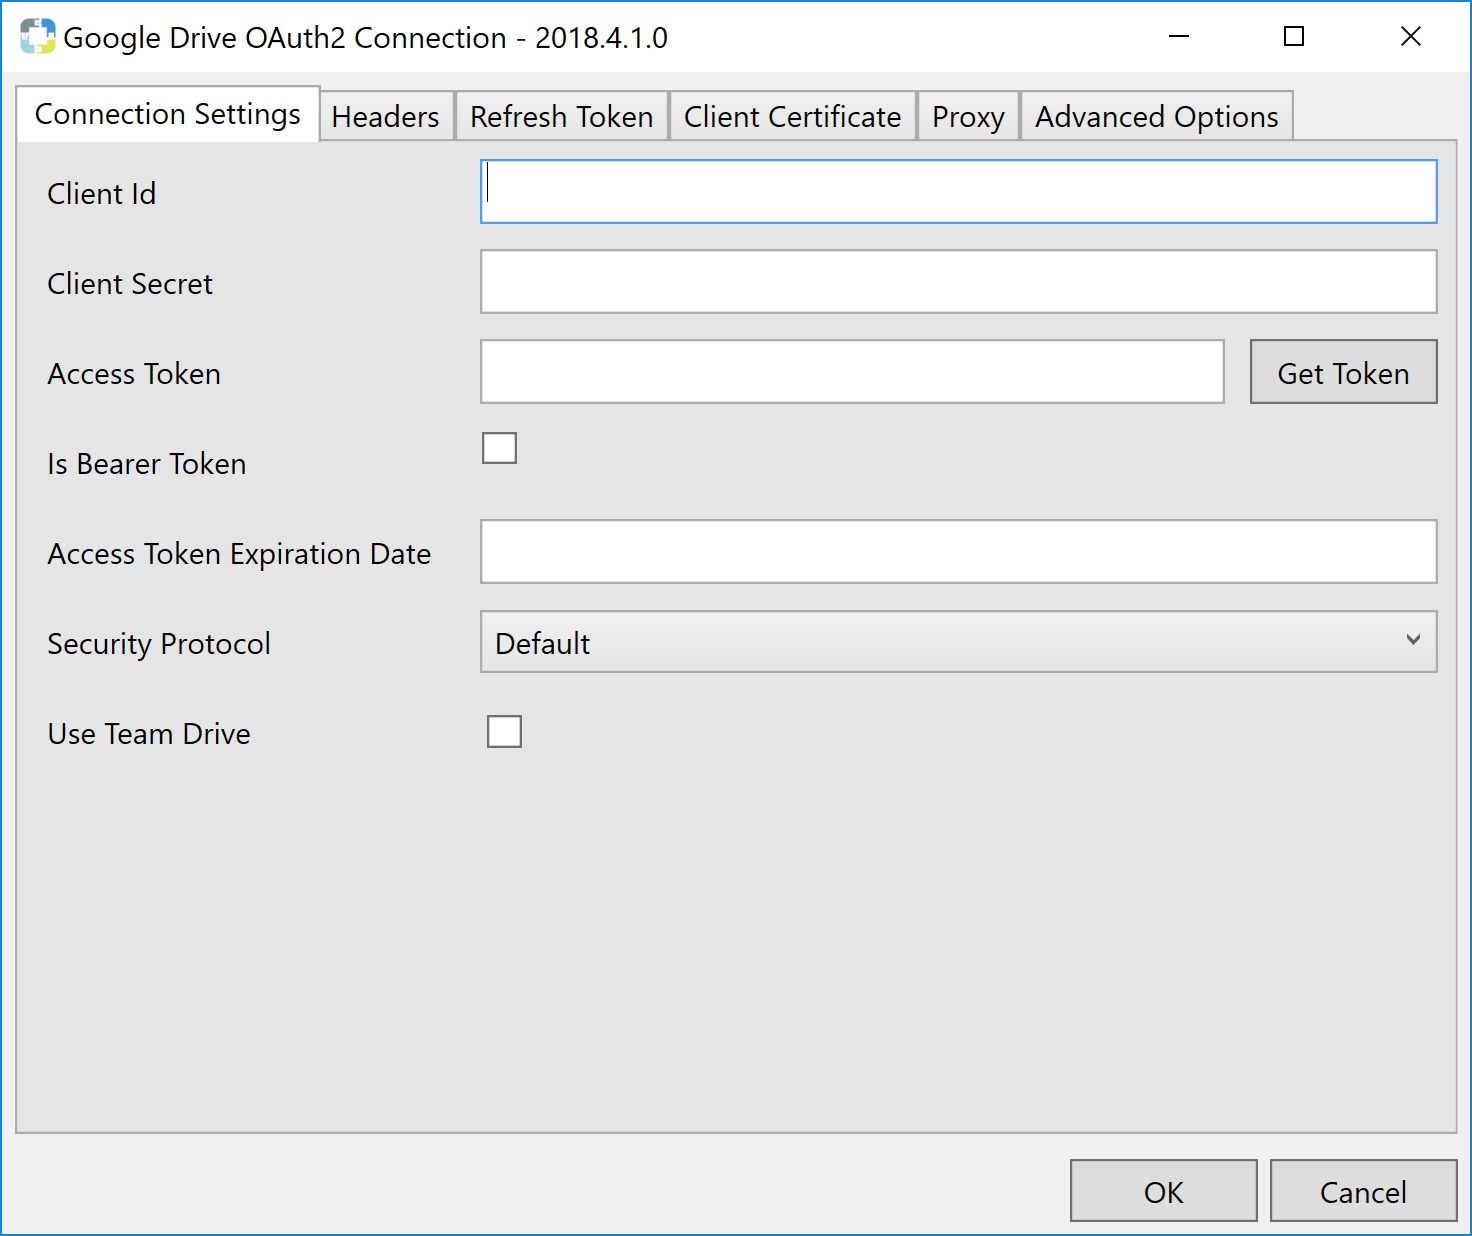 Task Factory Google Drive OAuth2 Connection Manager